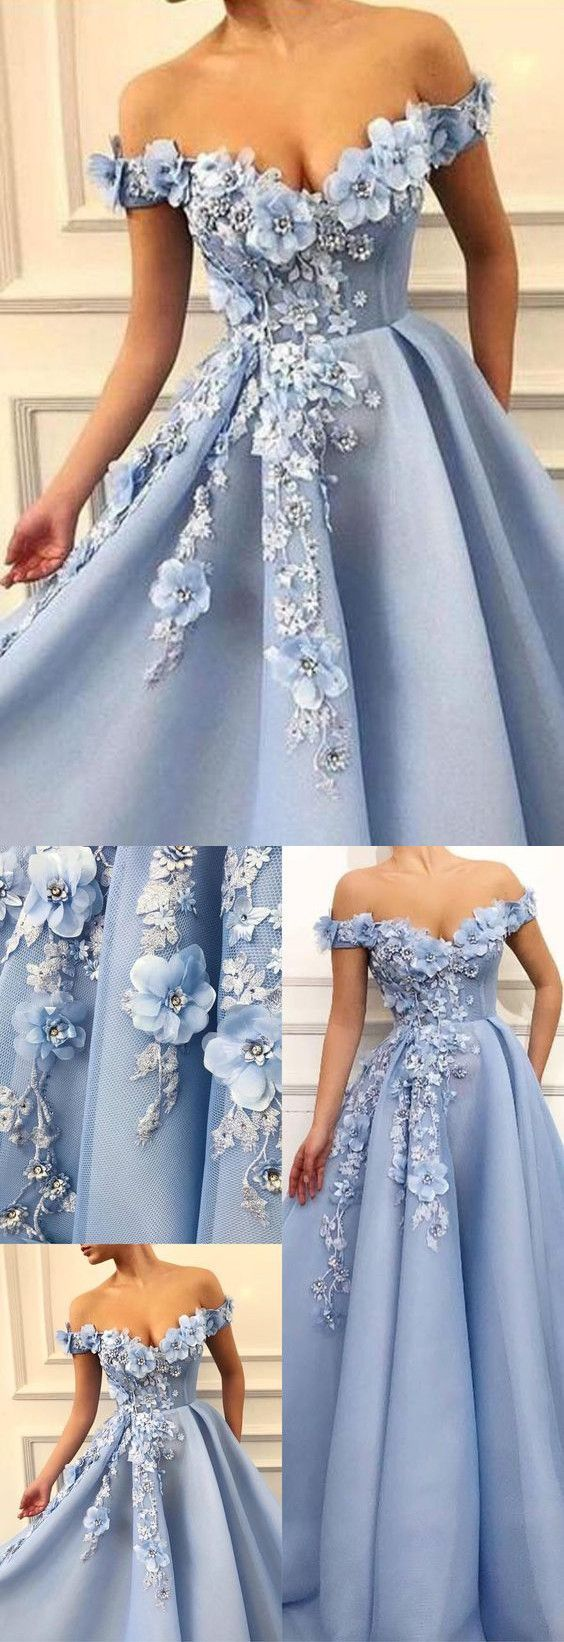 A-line Off-the-shoulder Long Prom Dress With Floral Formal Dresses